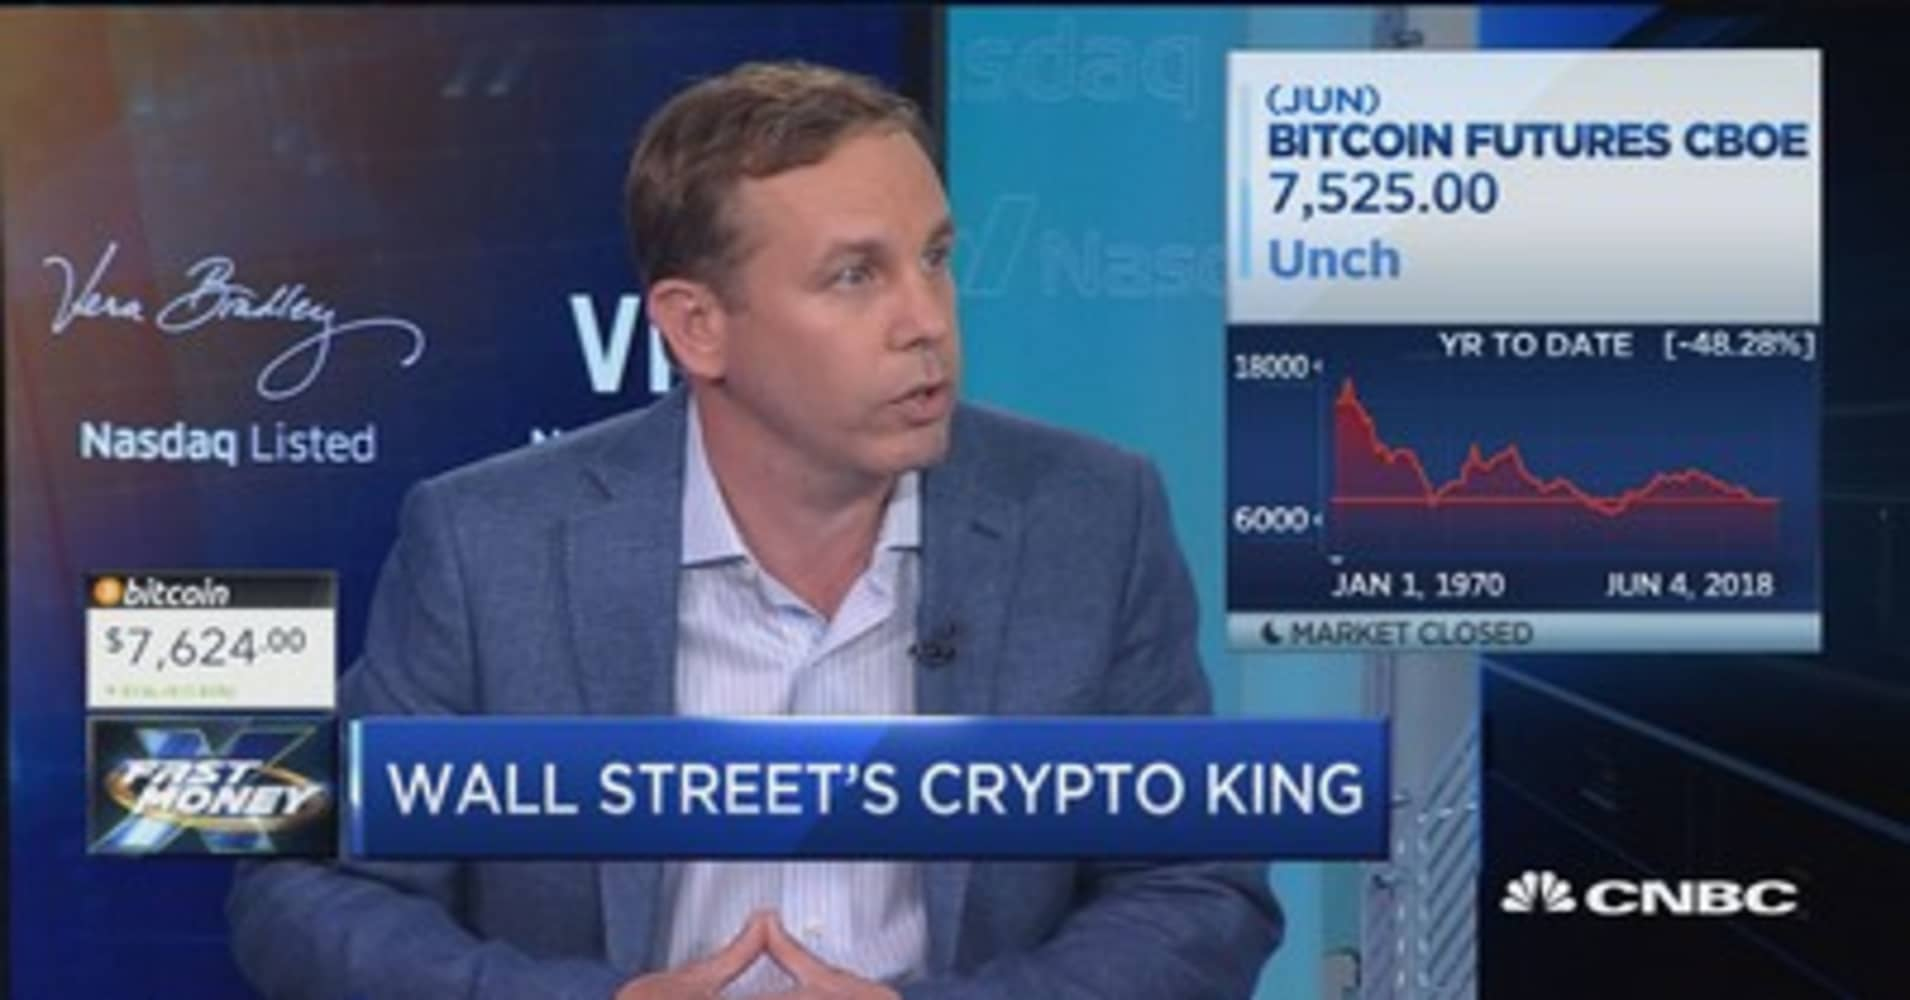 Wall Street's crypto king gives his take on the future of crypto